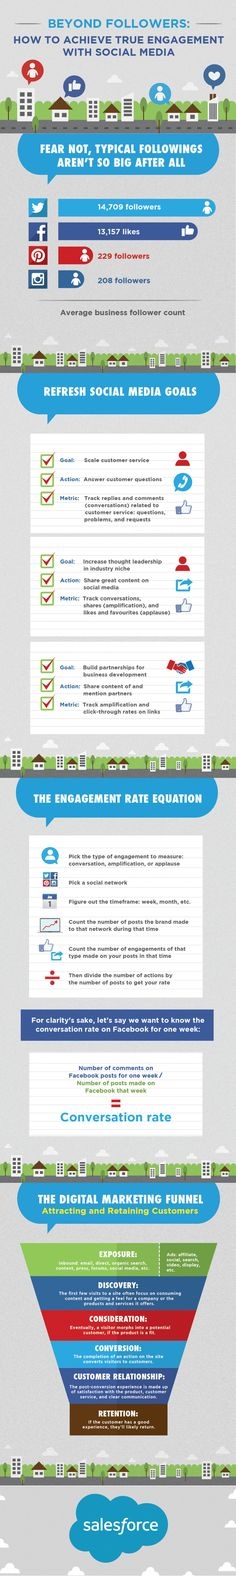 Beyond Followers: How to Achieve True Engagement with #SocialMedia - #infographic